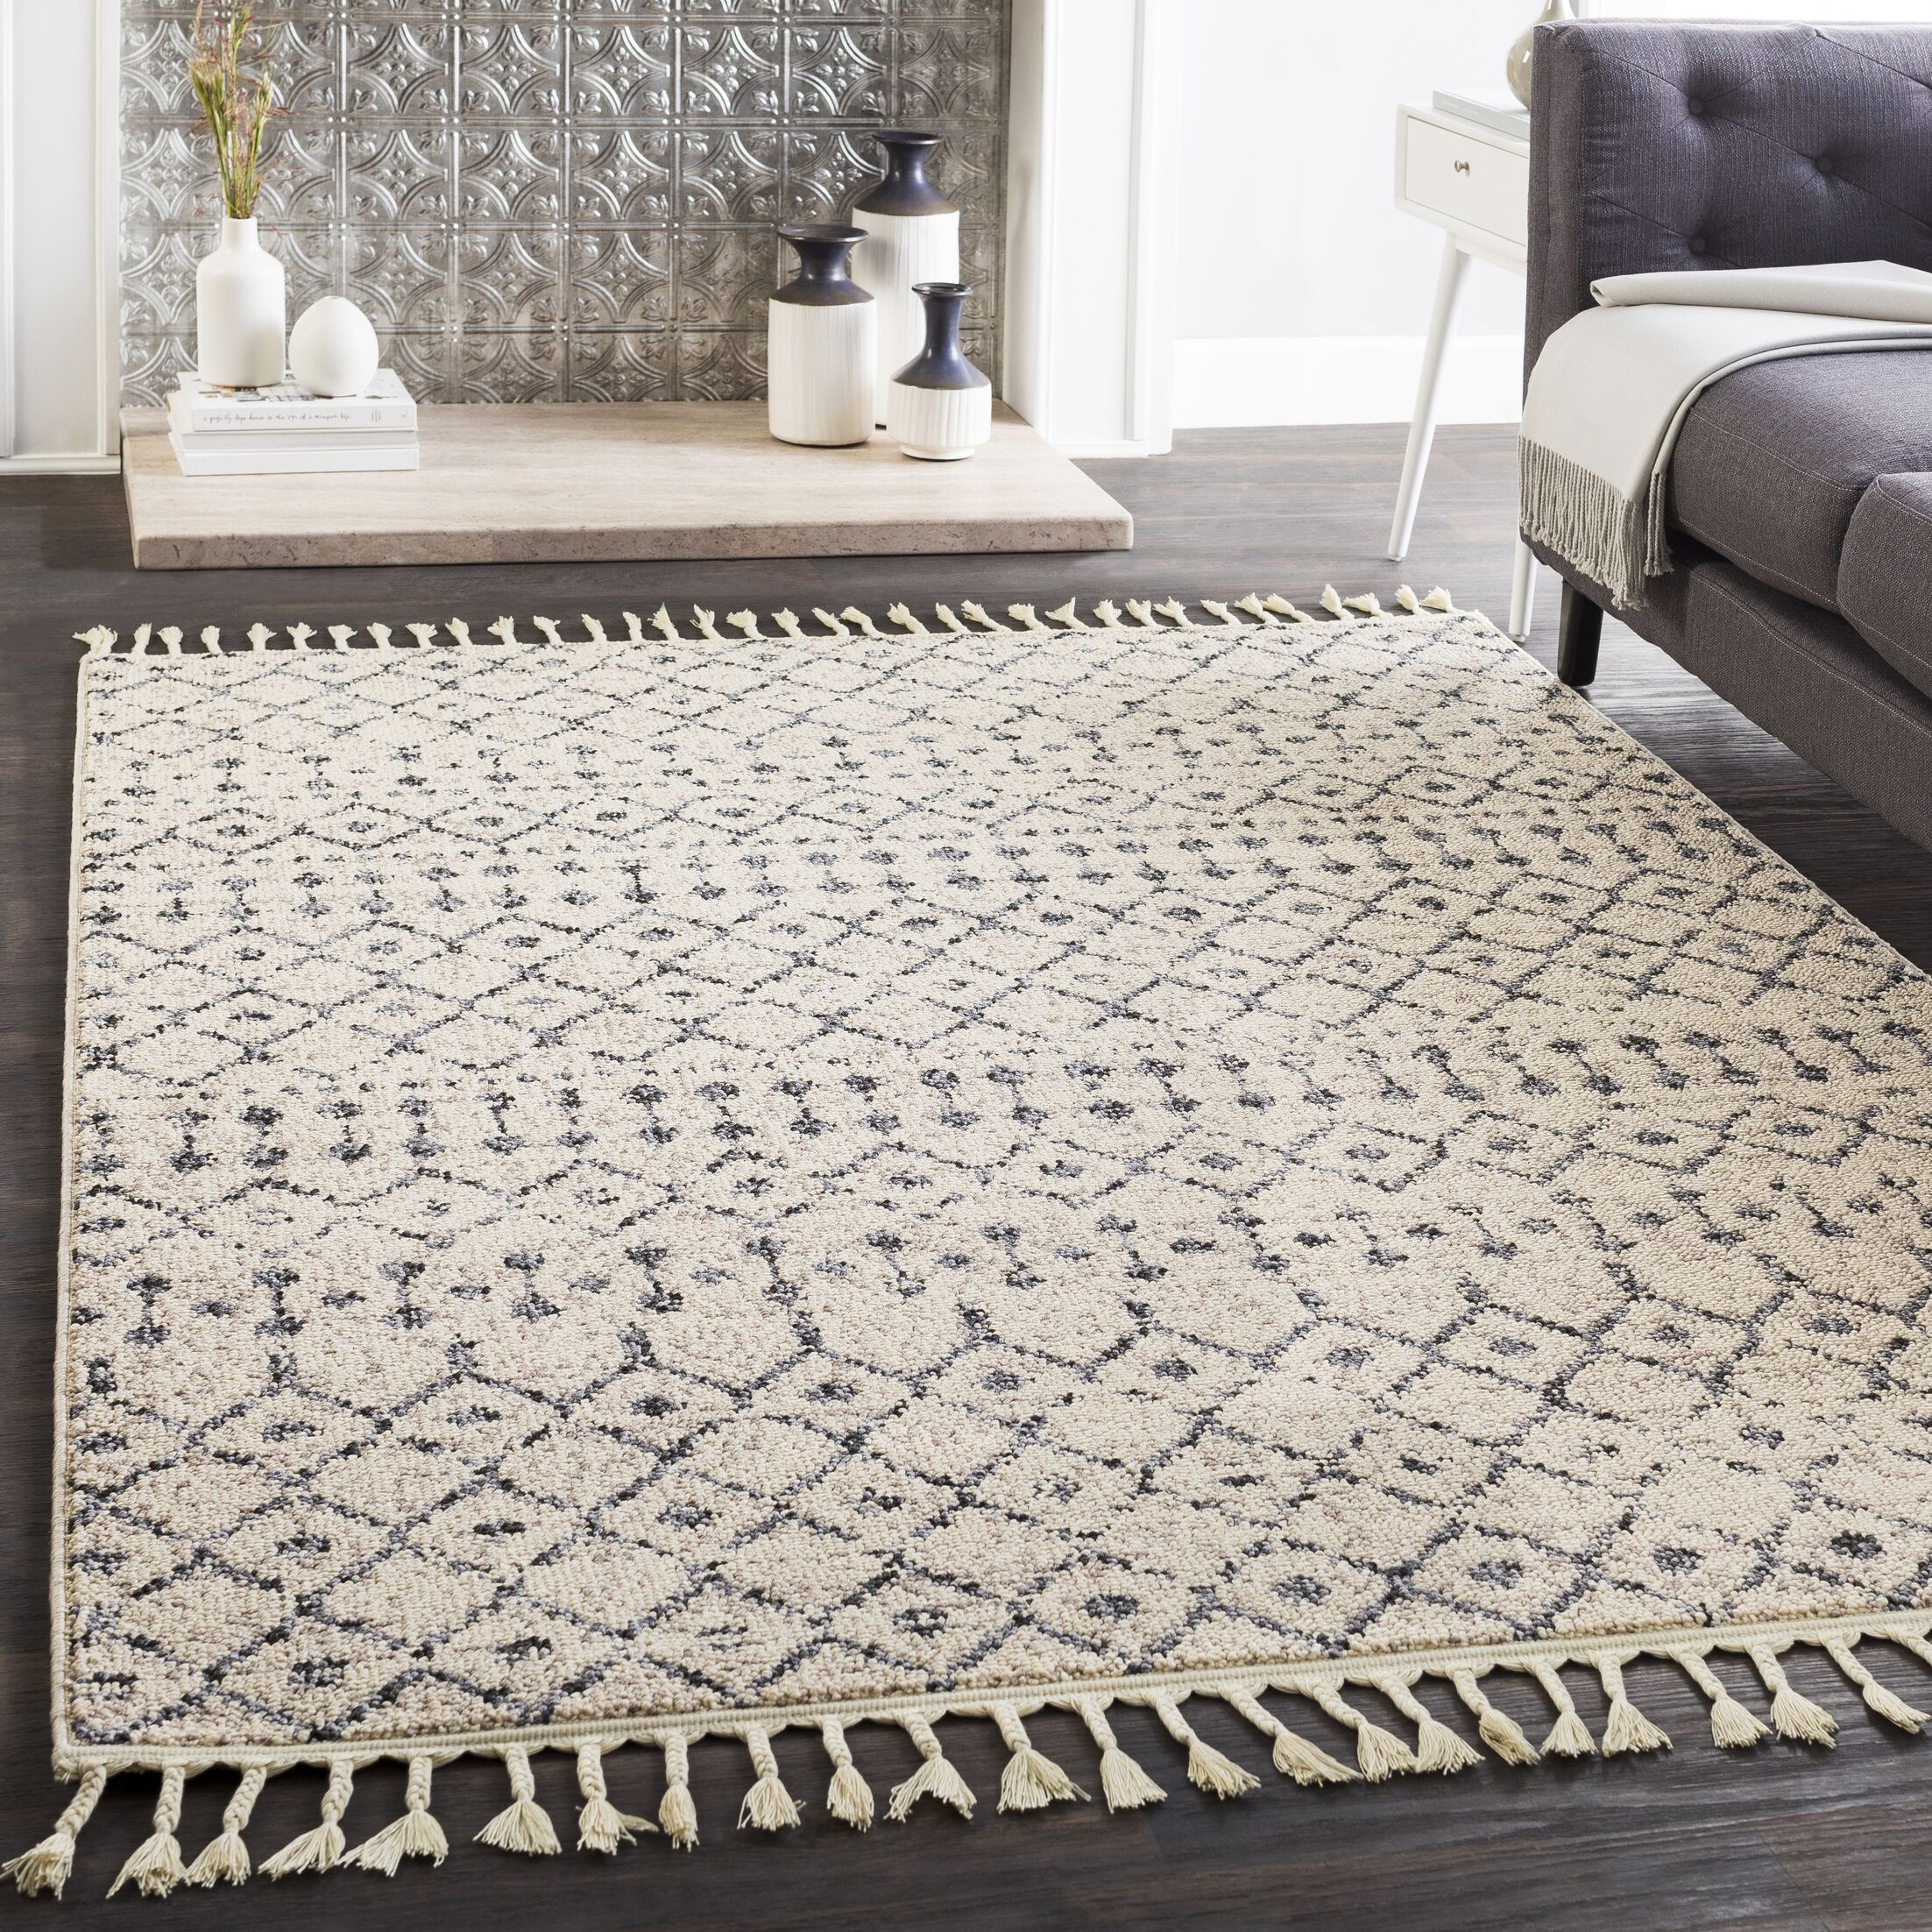 Hudgens Distressed Southwestern Ivory/Charcoal Area Rug Rug Size: Rectangle 7'10